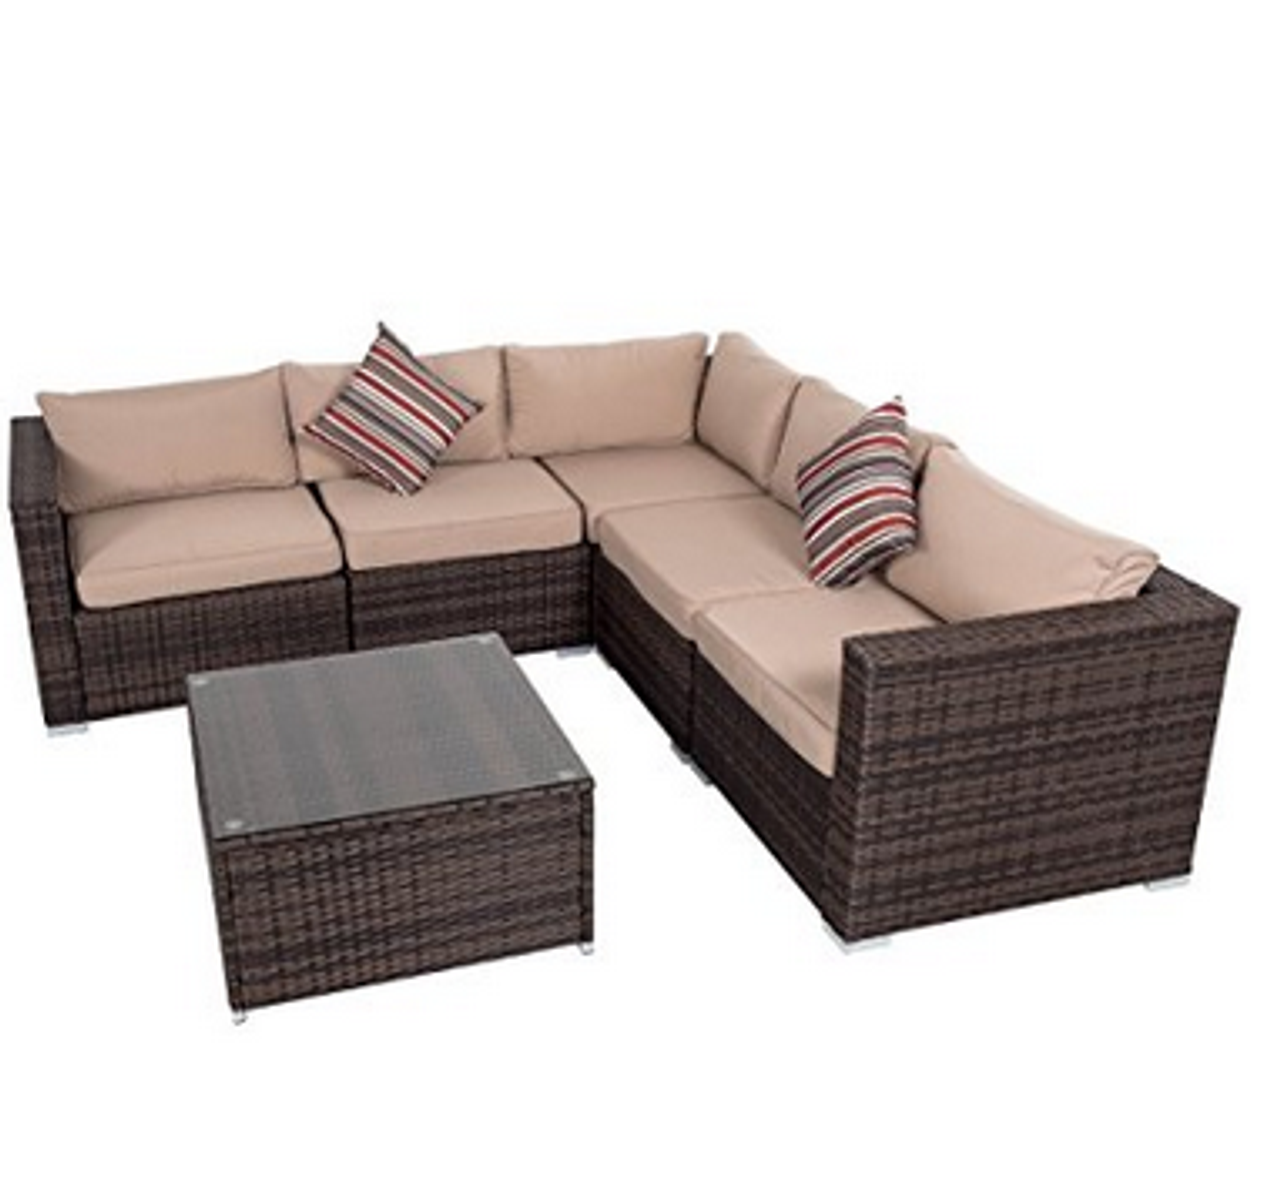 6 Pieces Wicker Patio Garden Furniture Sectional Sofa Set